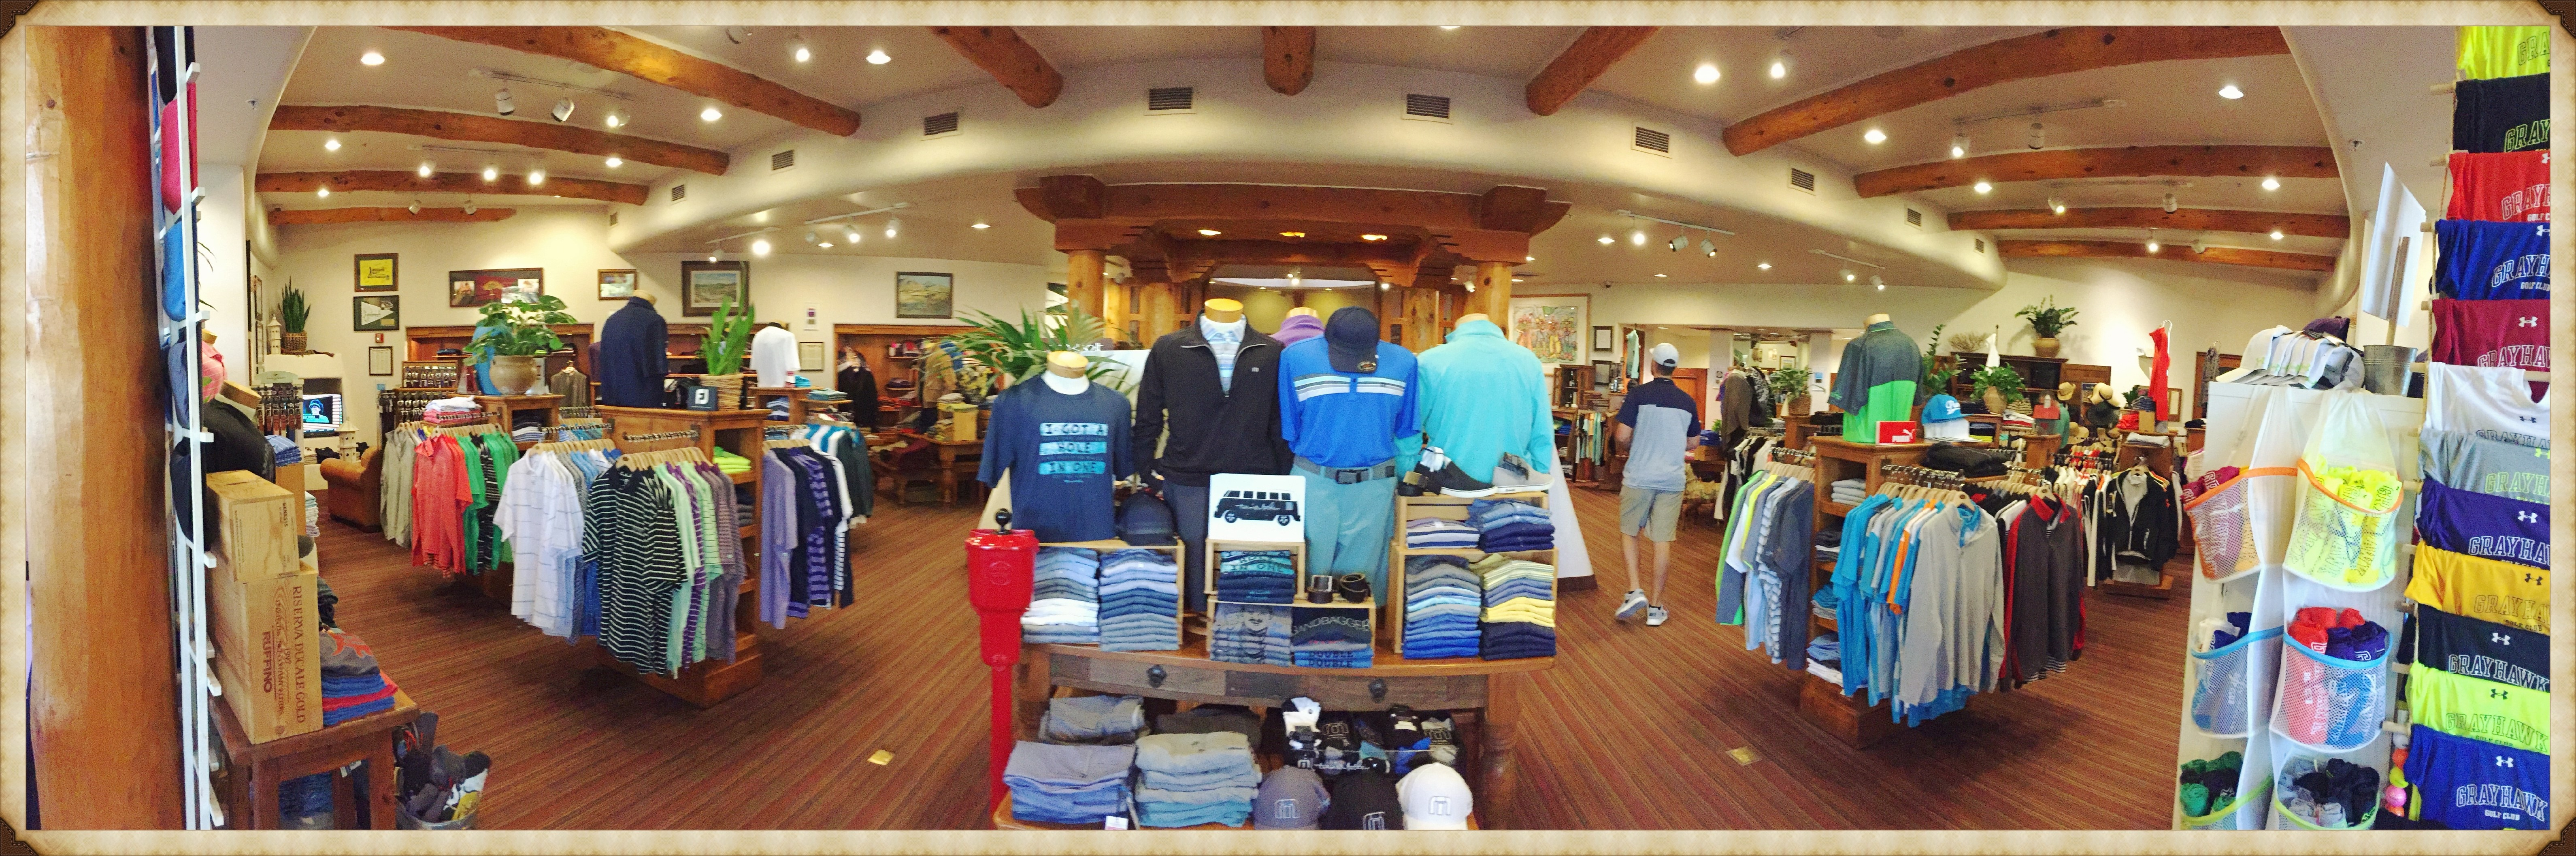 a report on my golf shop Four-season mountain resort with skiing and snowboarding, carinthia parks, dining, on-site lodging and spa, golf course, downhill mountain biking, summer camps.